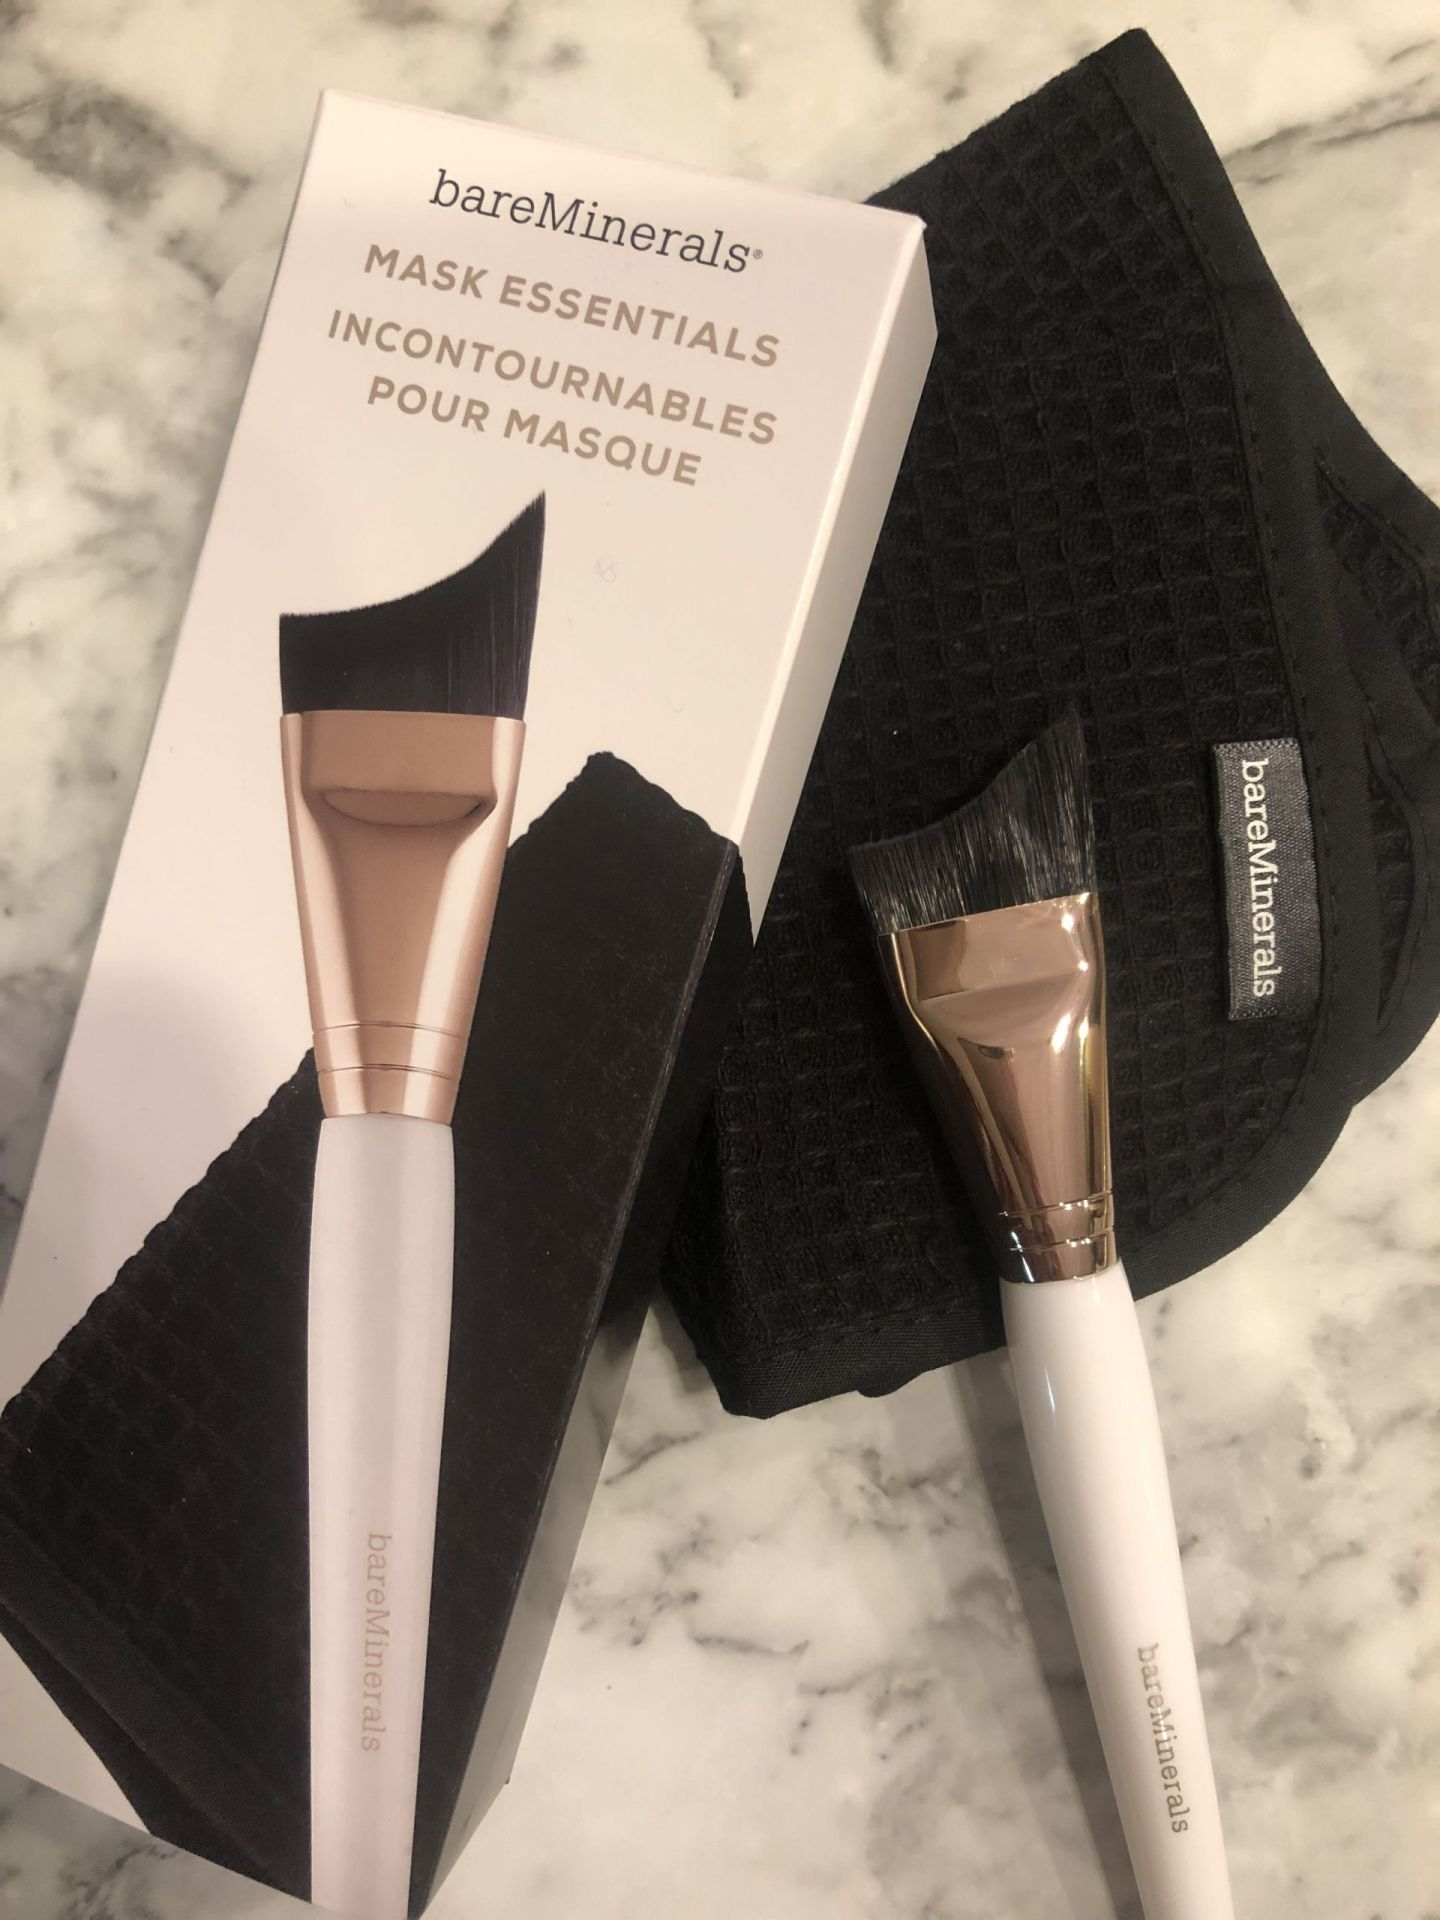 Bare Minerals Mask brush, Coast to Coast Friday Favorites